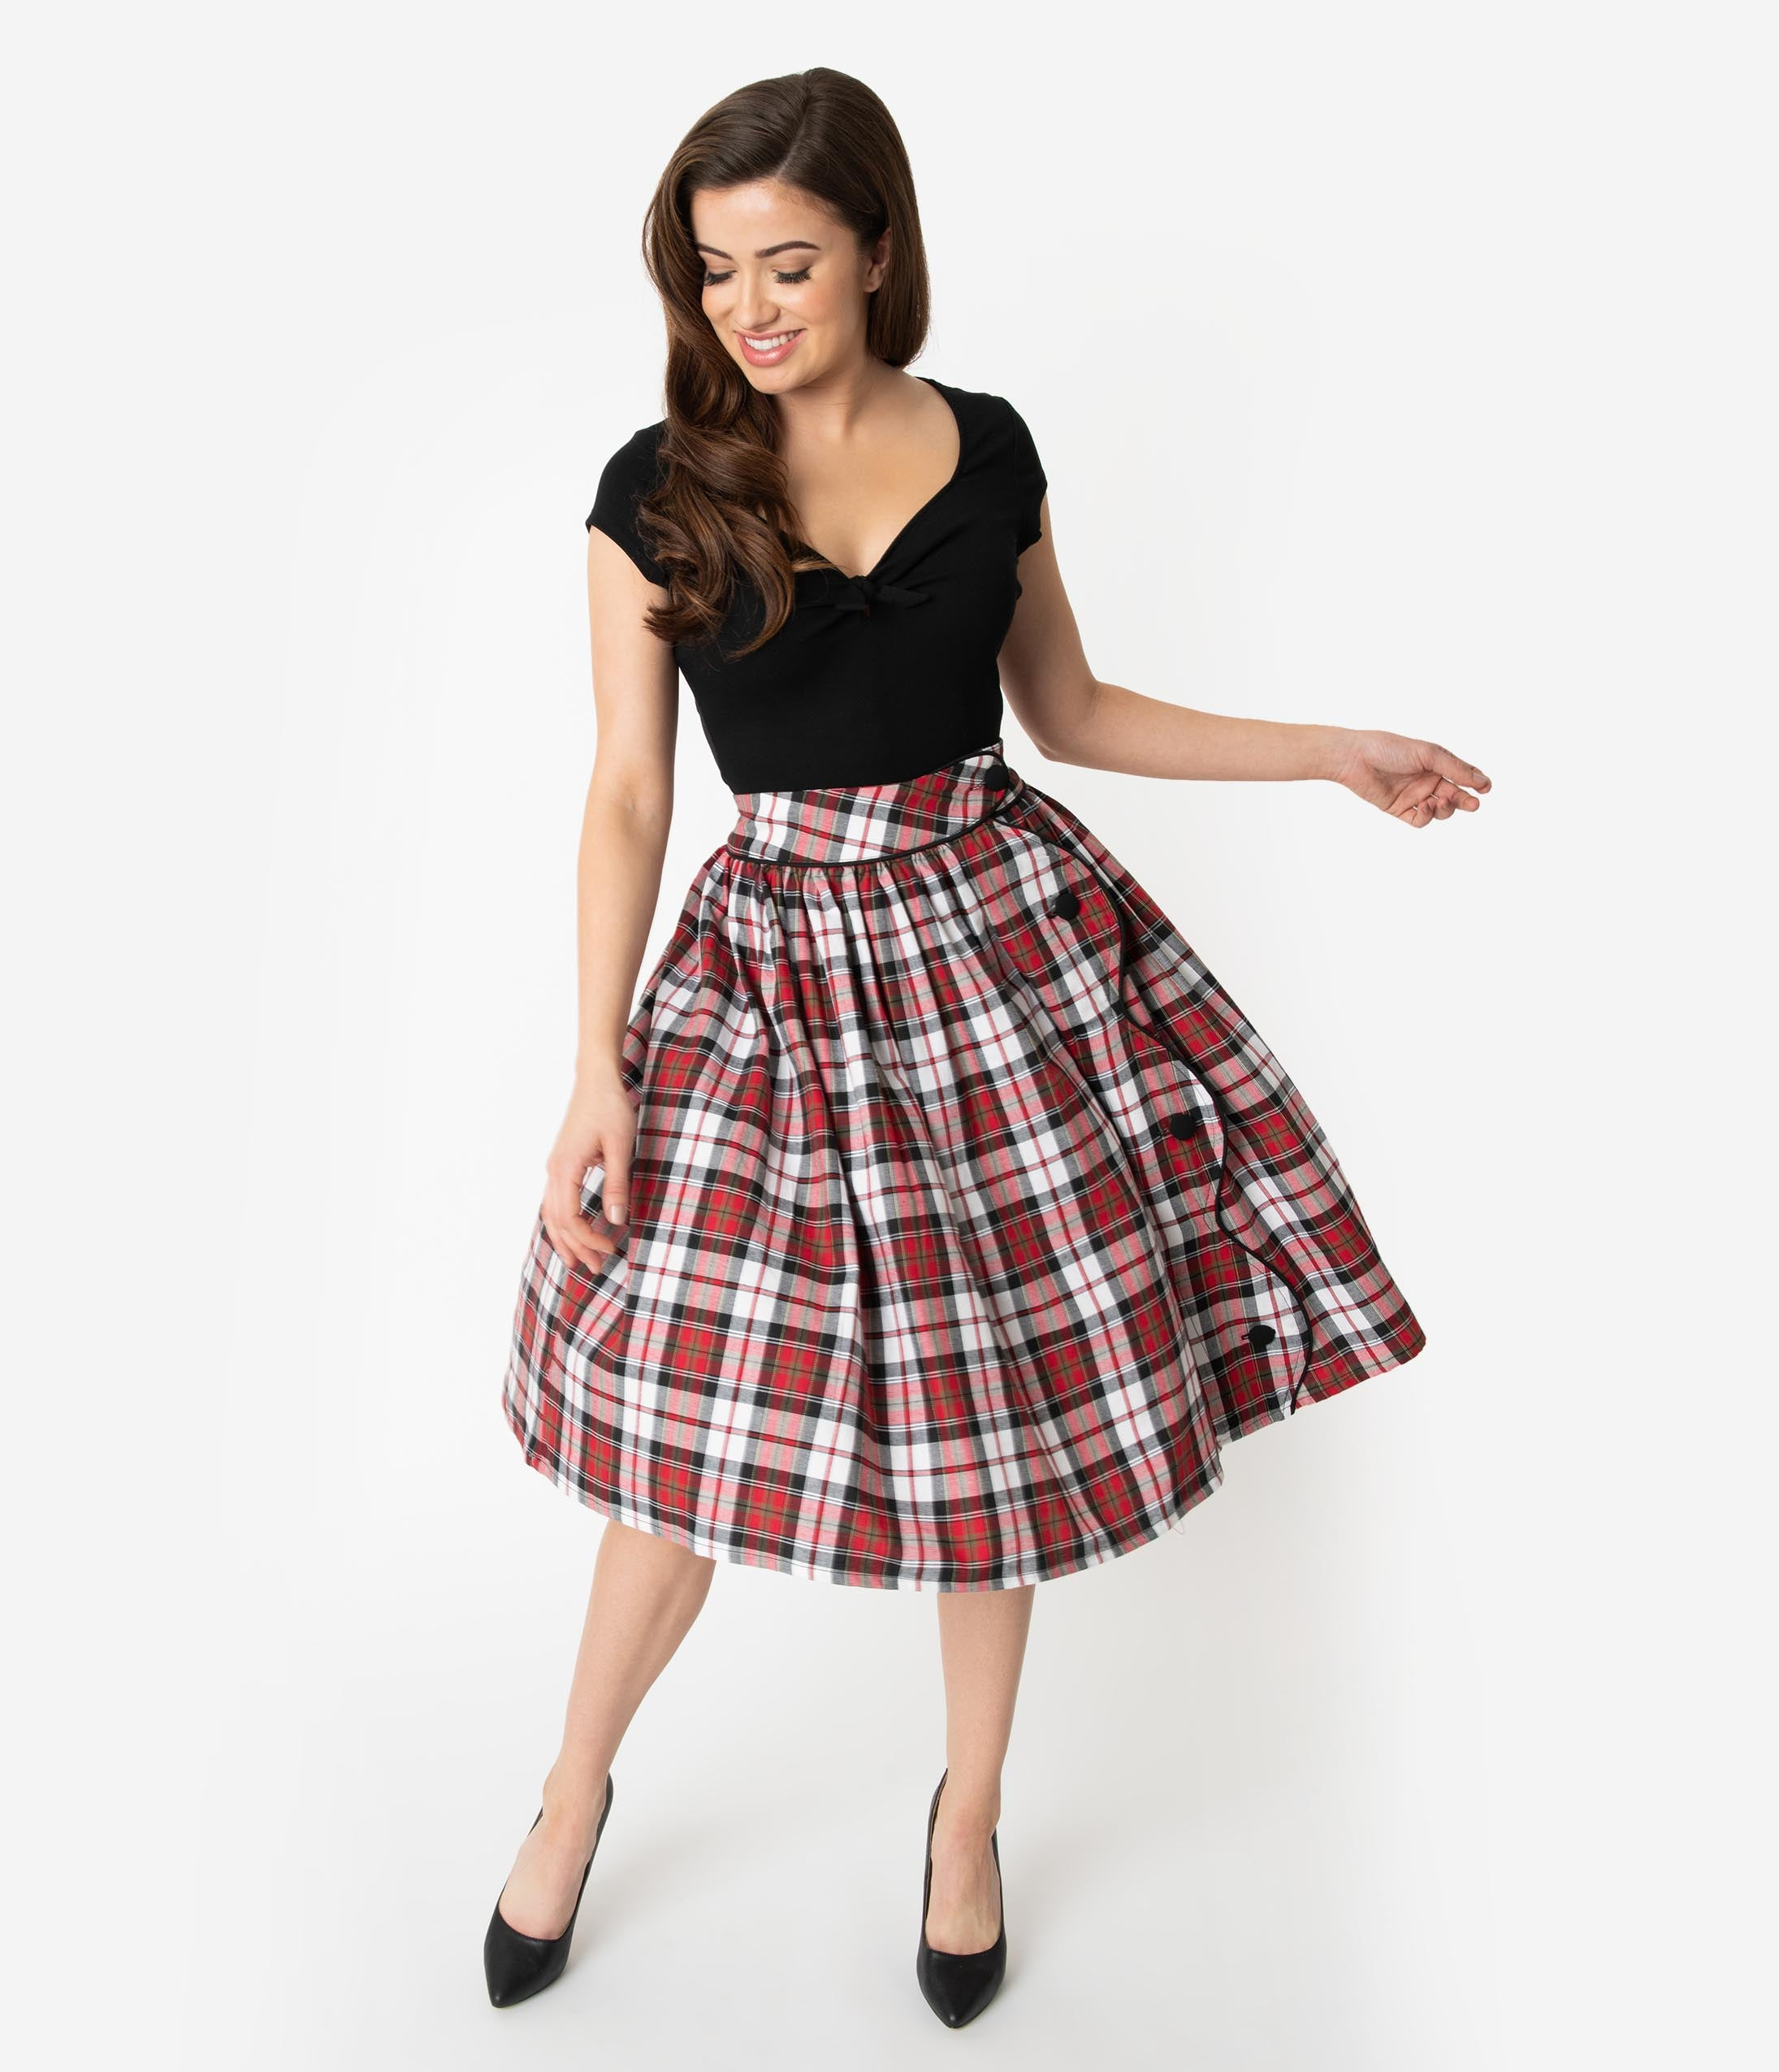 1950s Swing Skirt, Poodle Skirt, Pencil Skirts Unique Vintage Red  Black Plaid Scalloped Button Romero Swing Skirt $68.00 AT vintagedancer.com